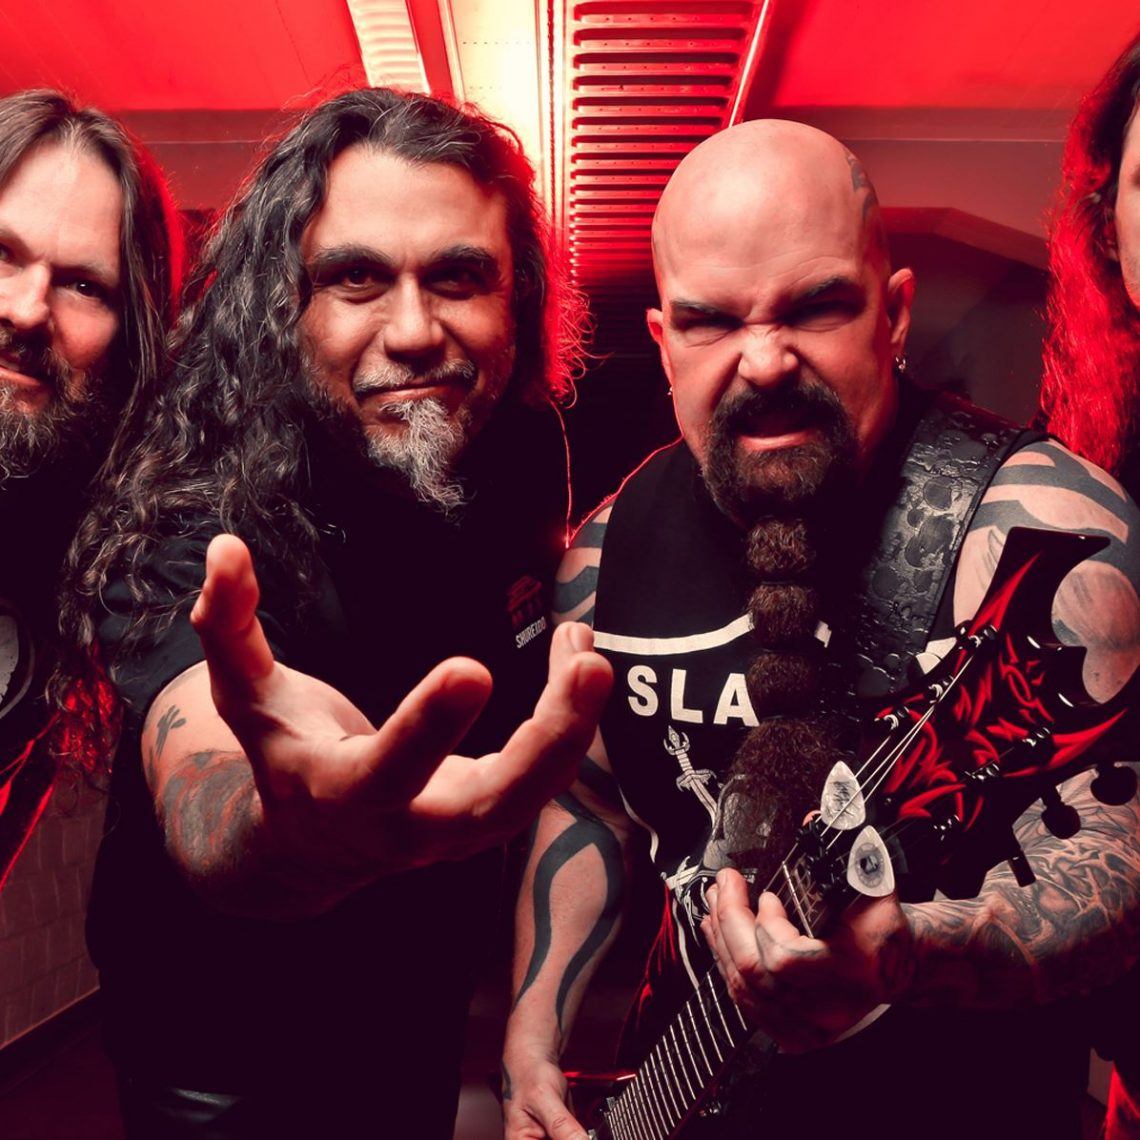 Slayer post more photo's from the studio